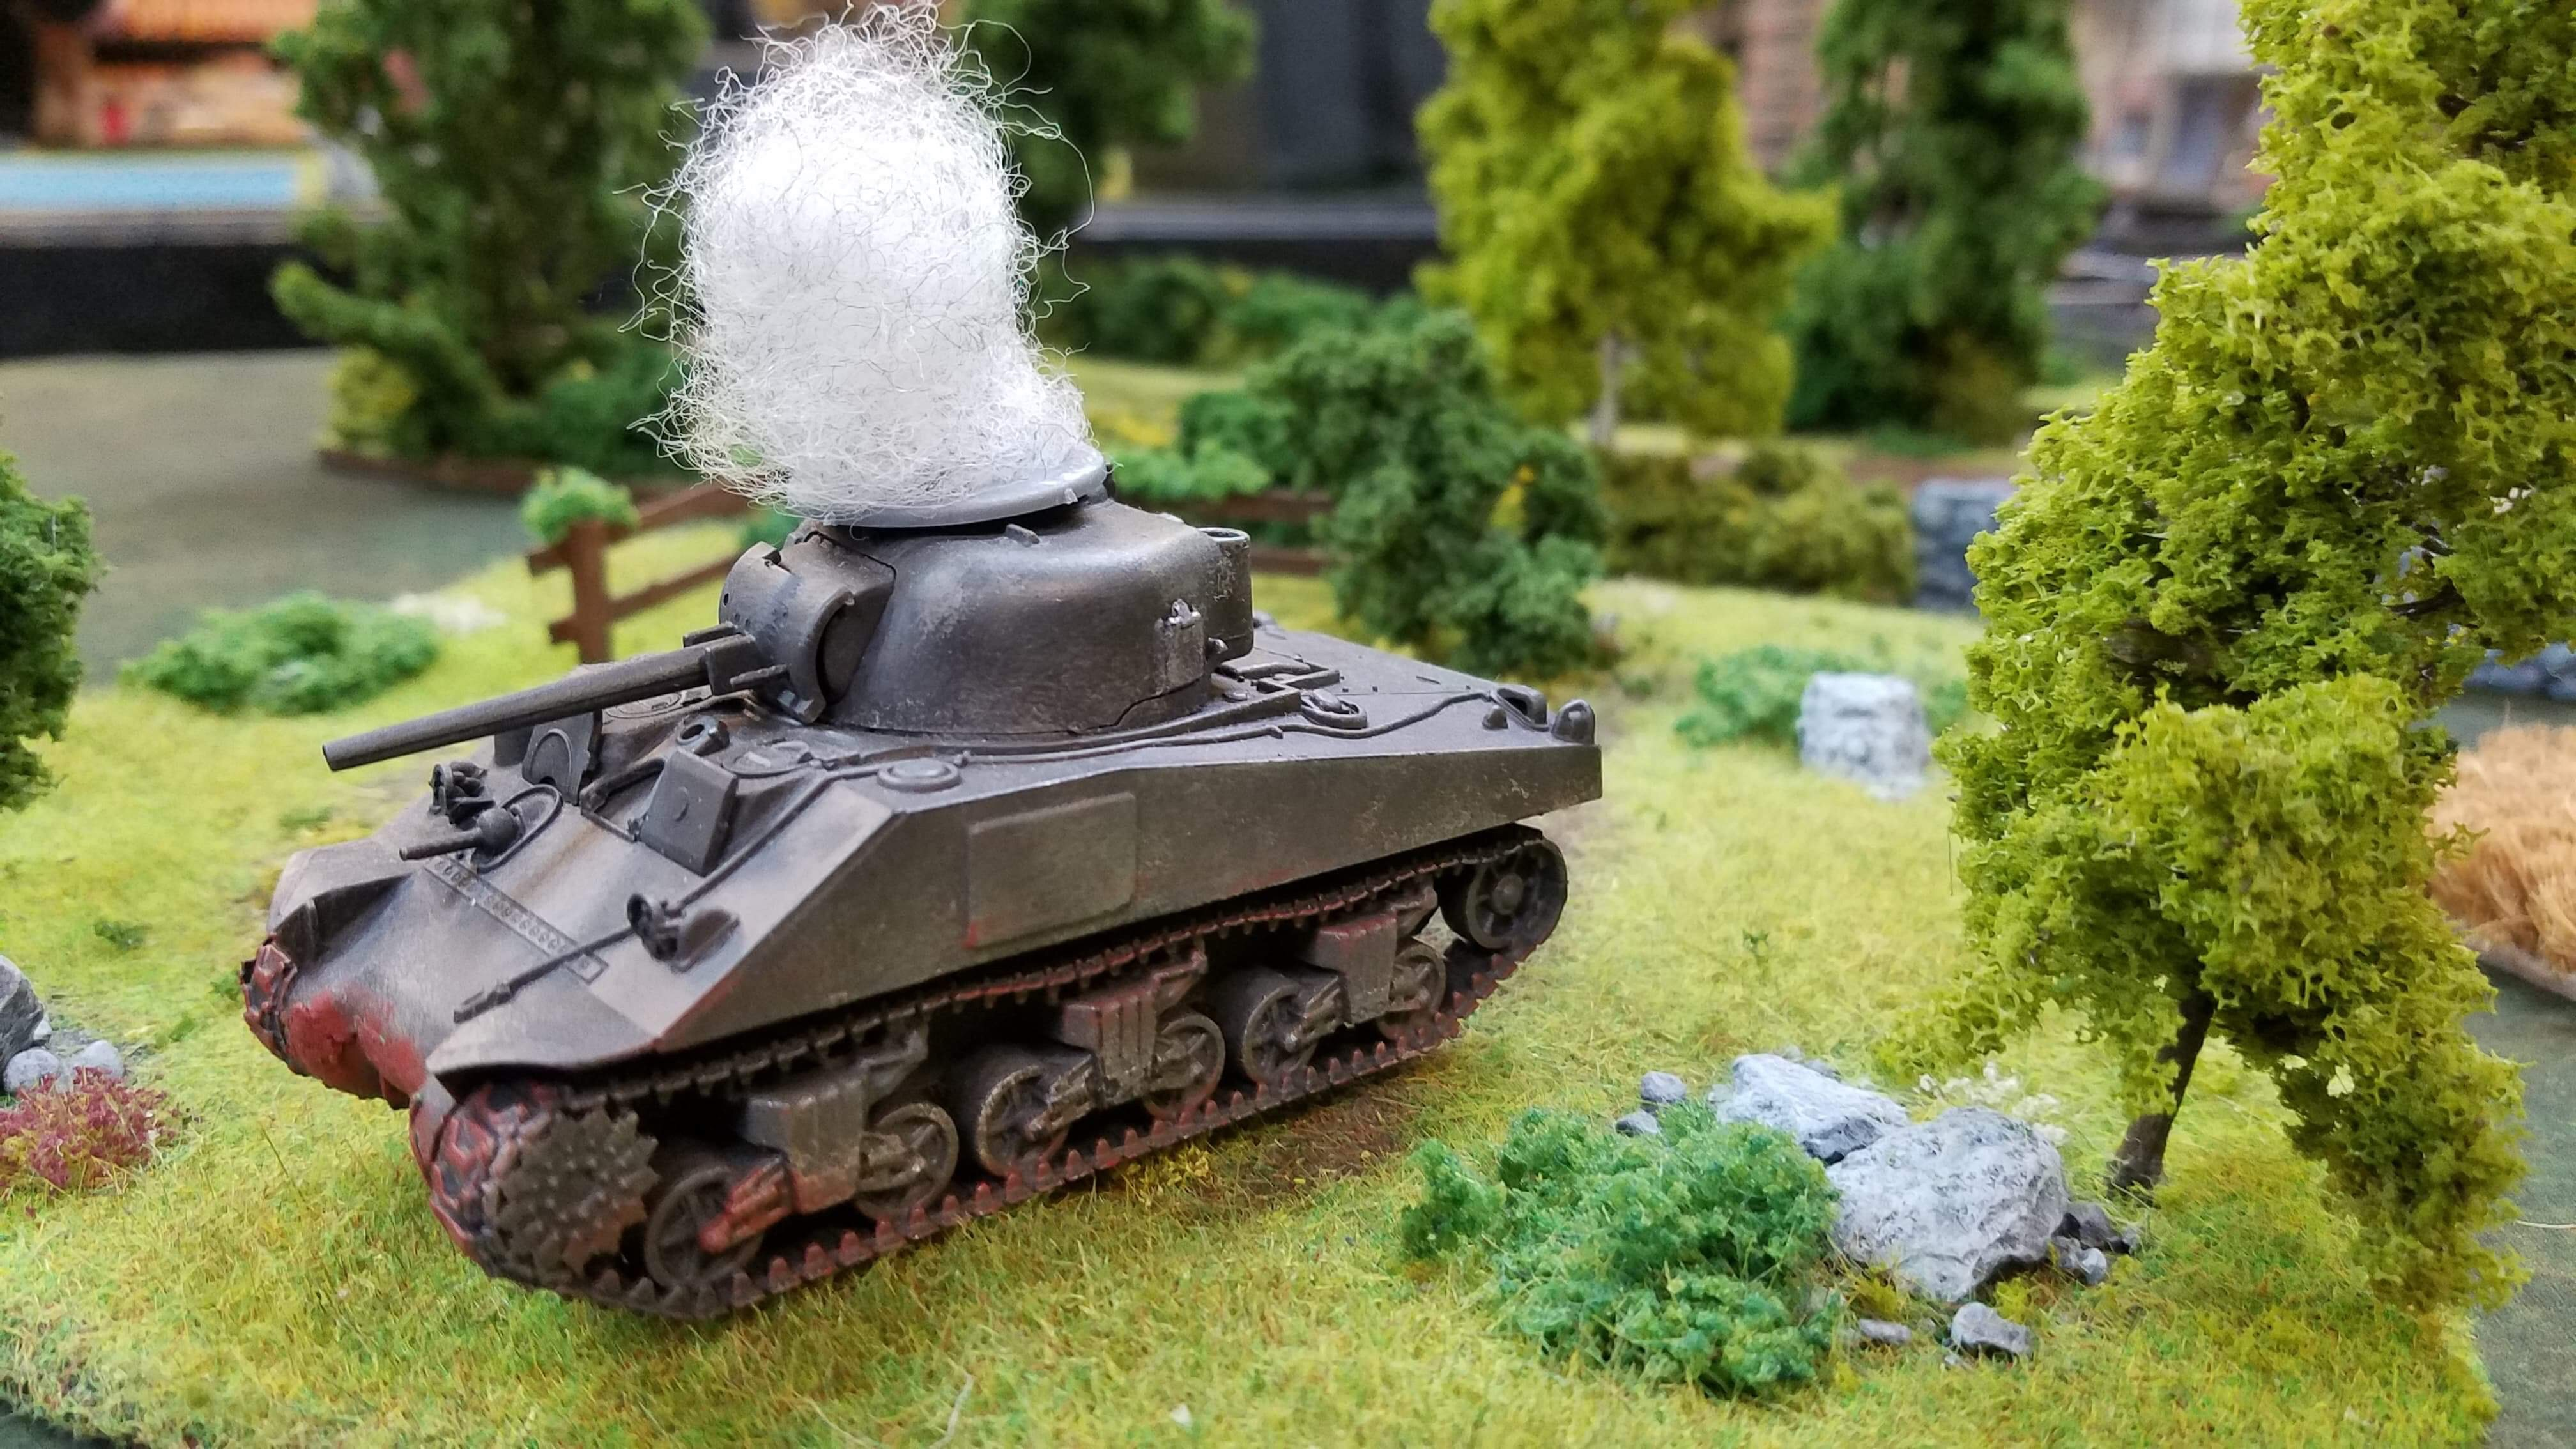 352nd Pionier Battalion versus Daves USA in an armoured engagement